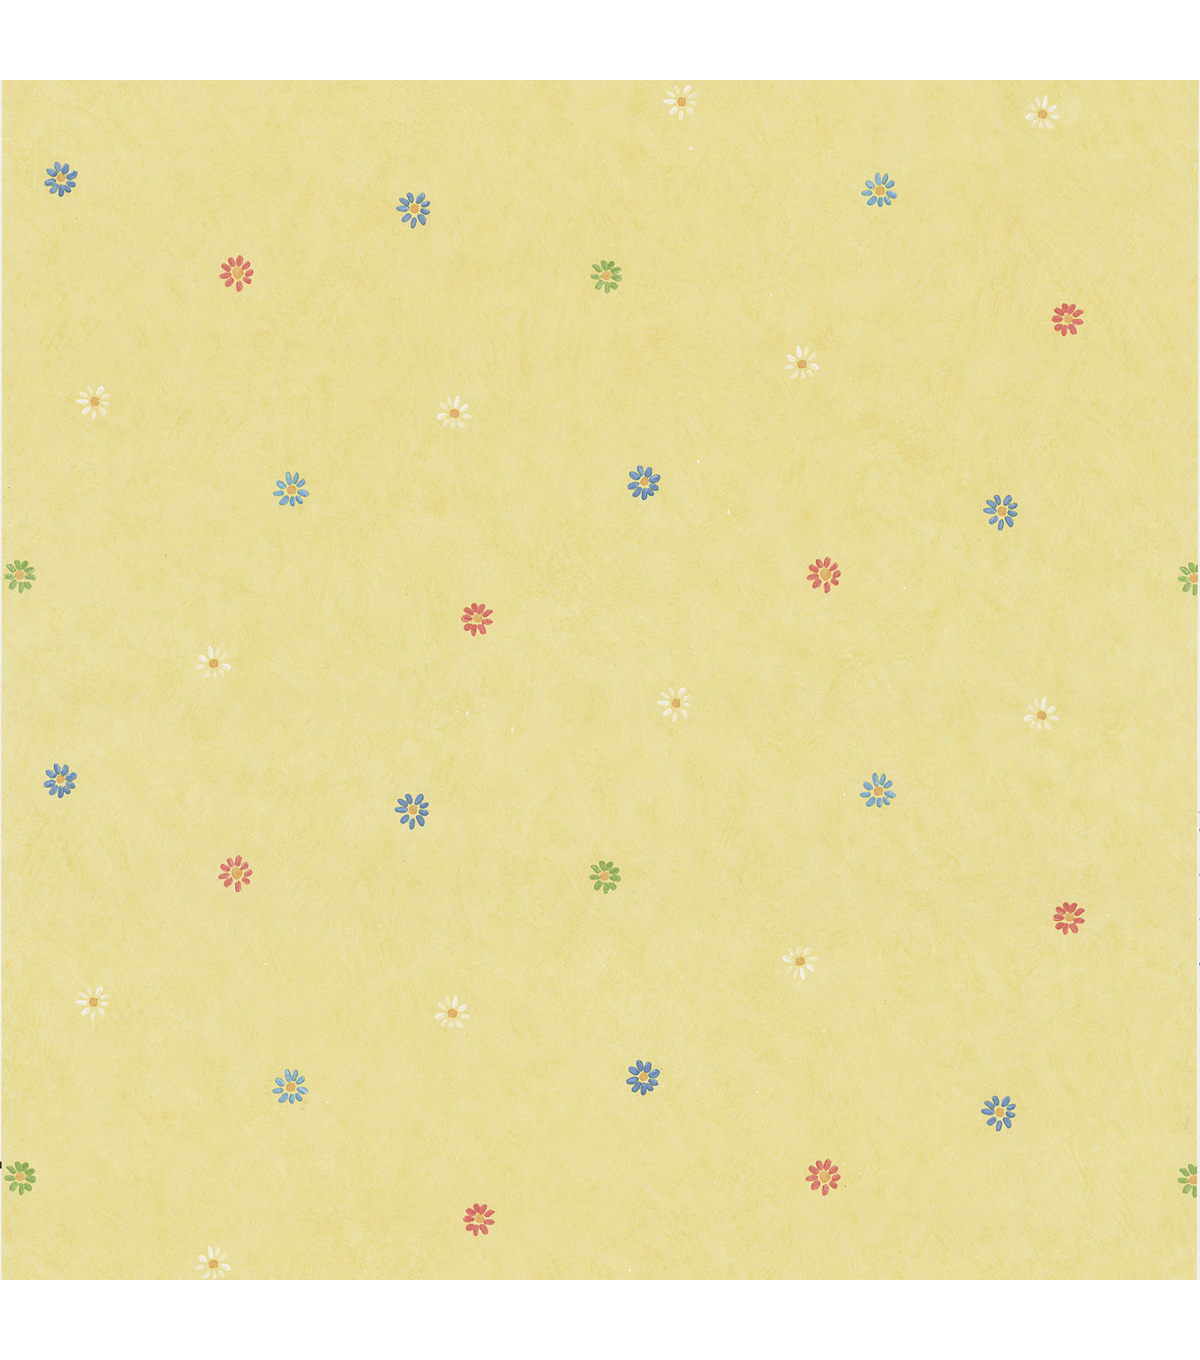 Abby Lee Yellow Flowers Wallpaper Sample